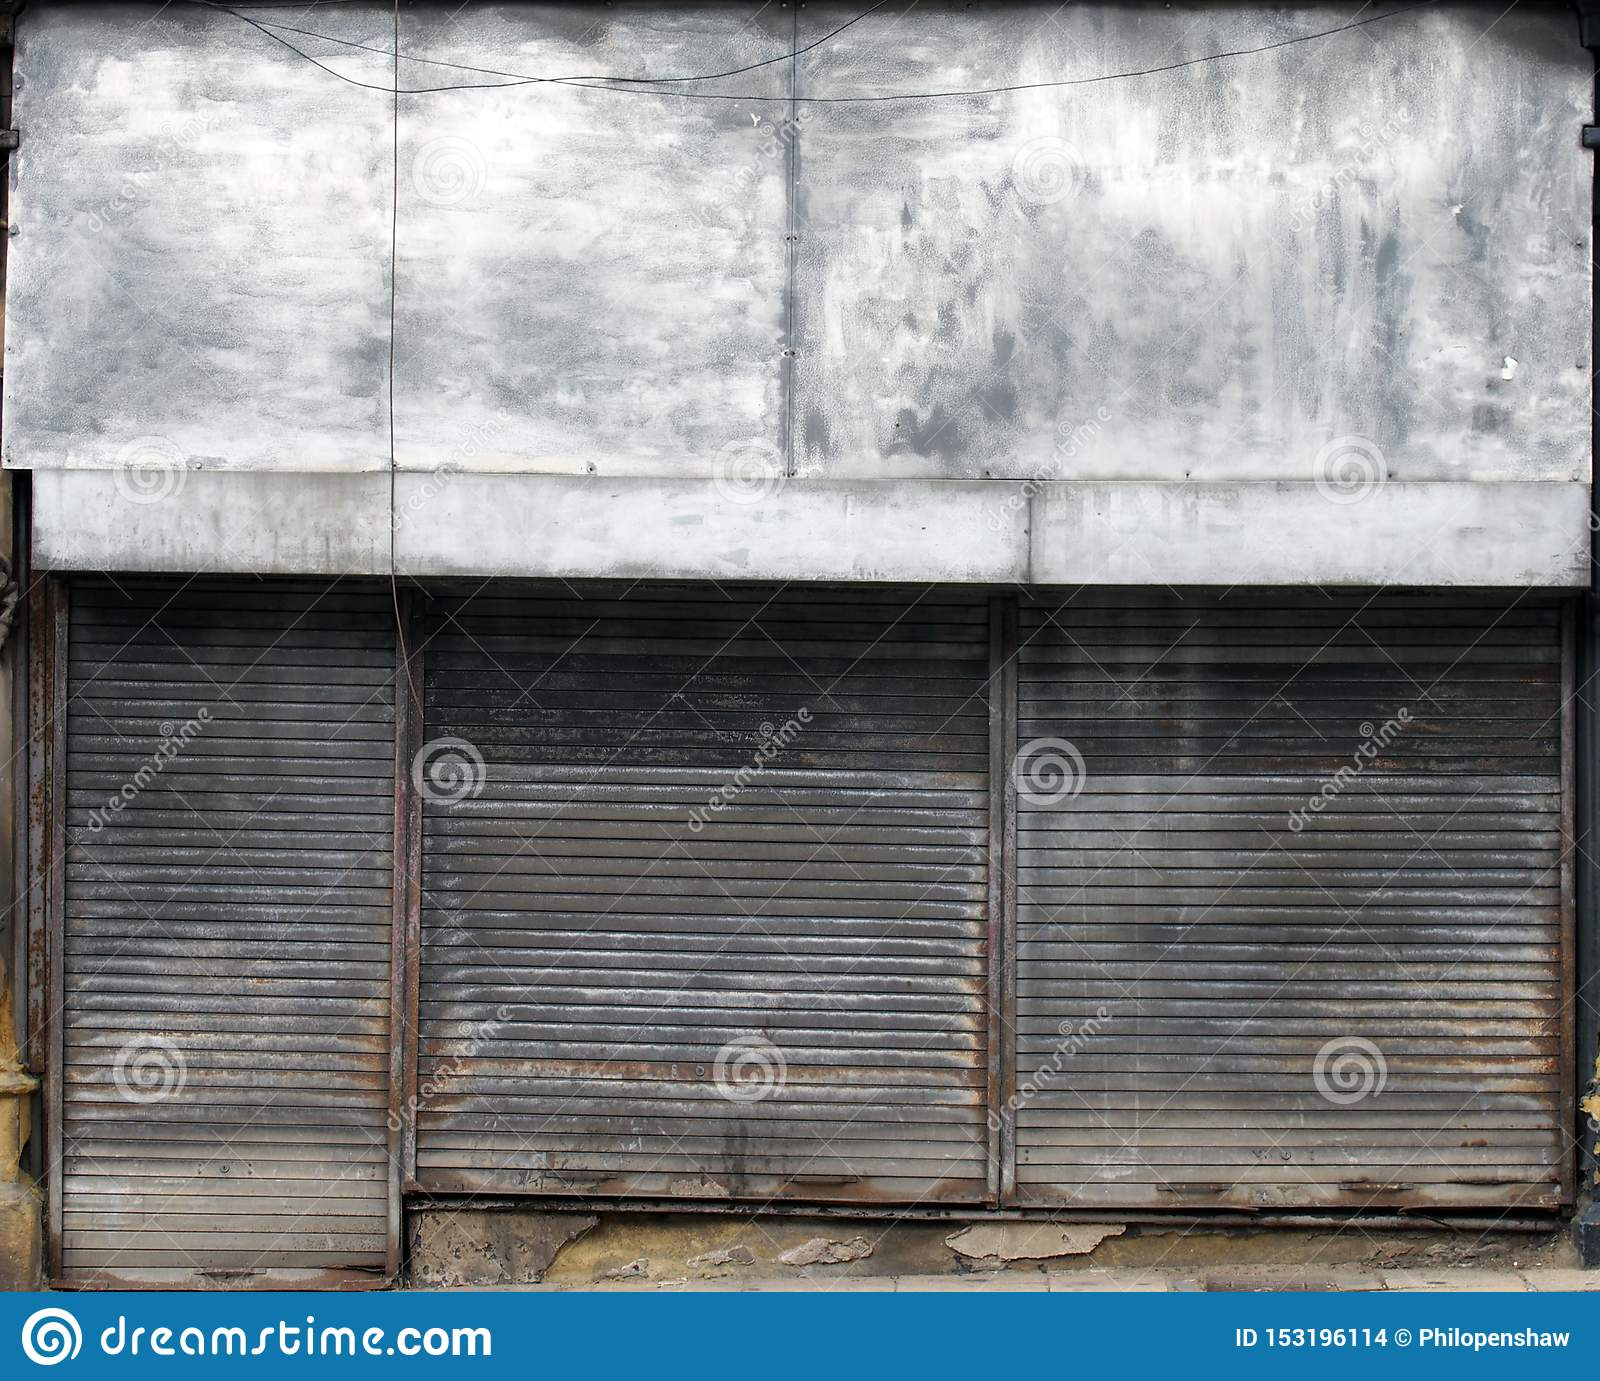 The front of an abandoned store on a street with closed rusting metal shutters over the shop front and door